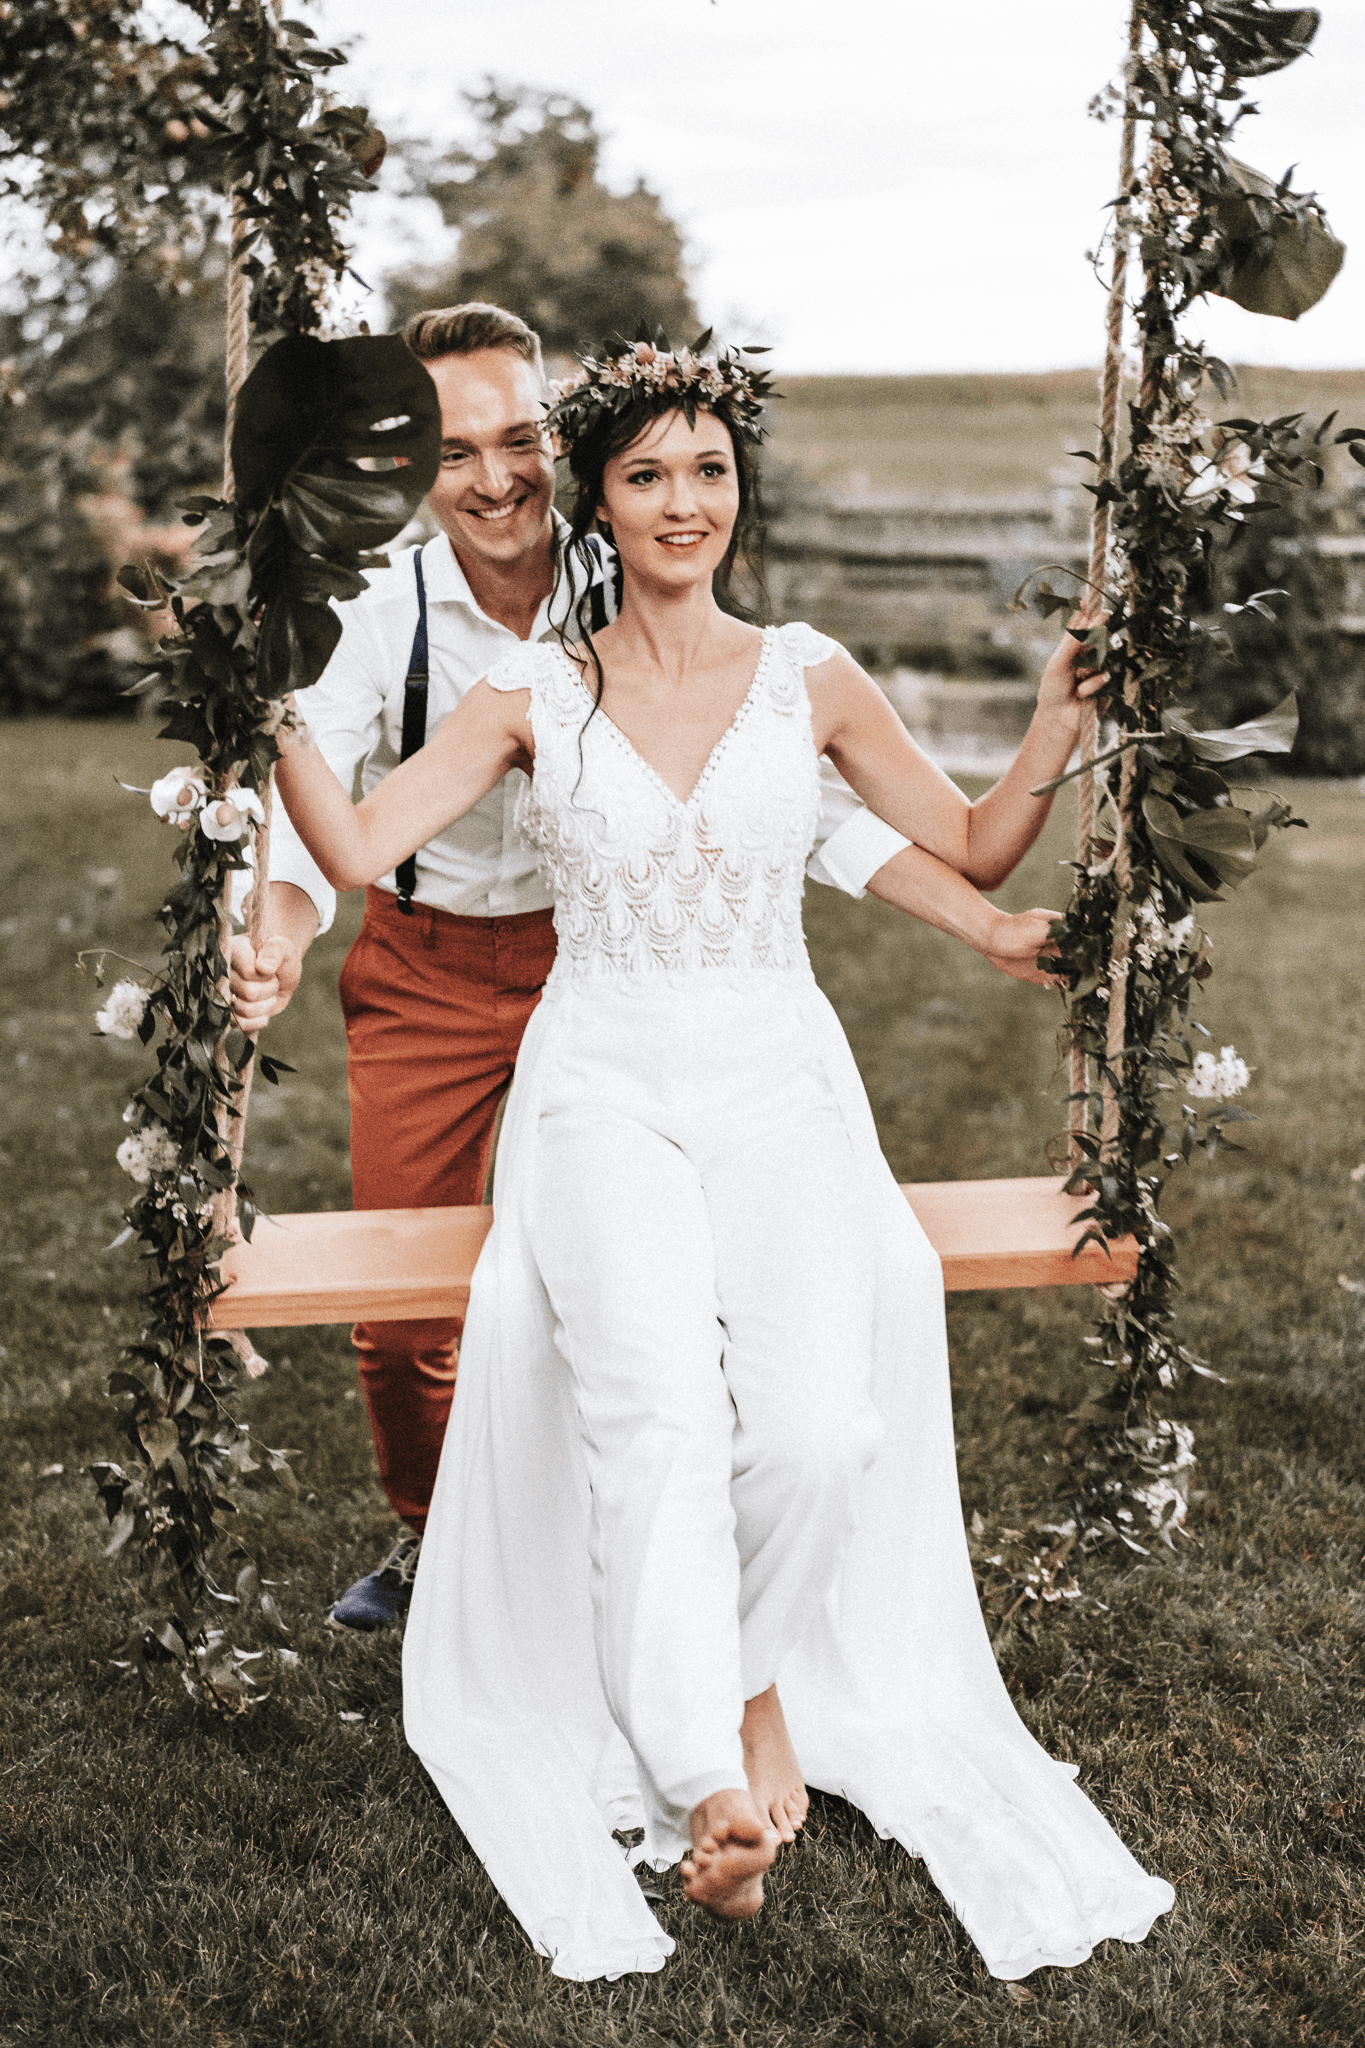 brautatelier ried-styled shooting-fellnerhof-couple 1-boho-schauckel-jump suit-1-min